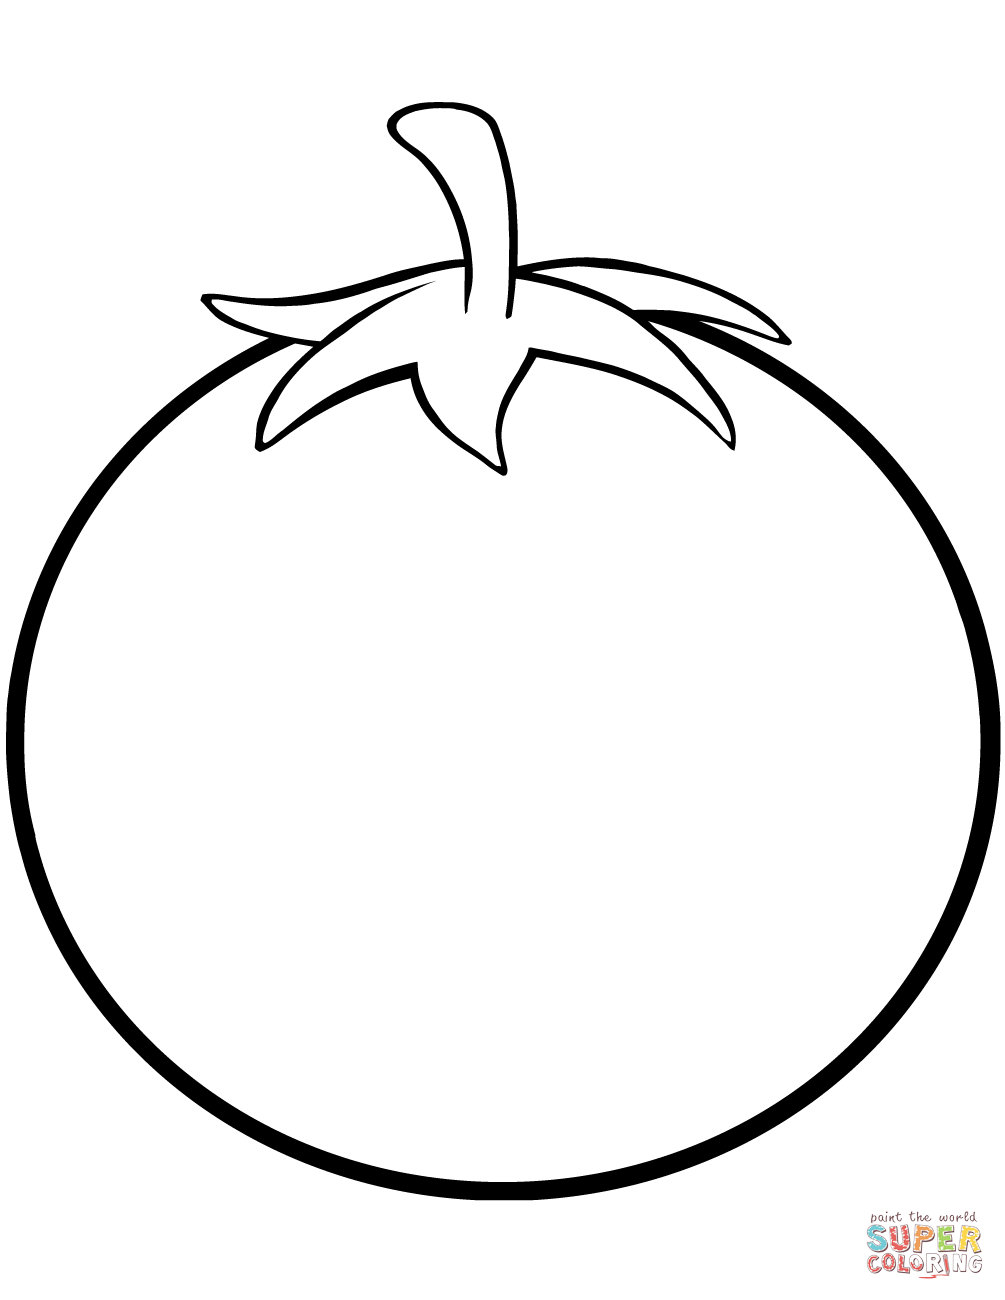 Pages free . Tomatoes clipart coloring page